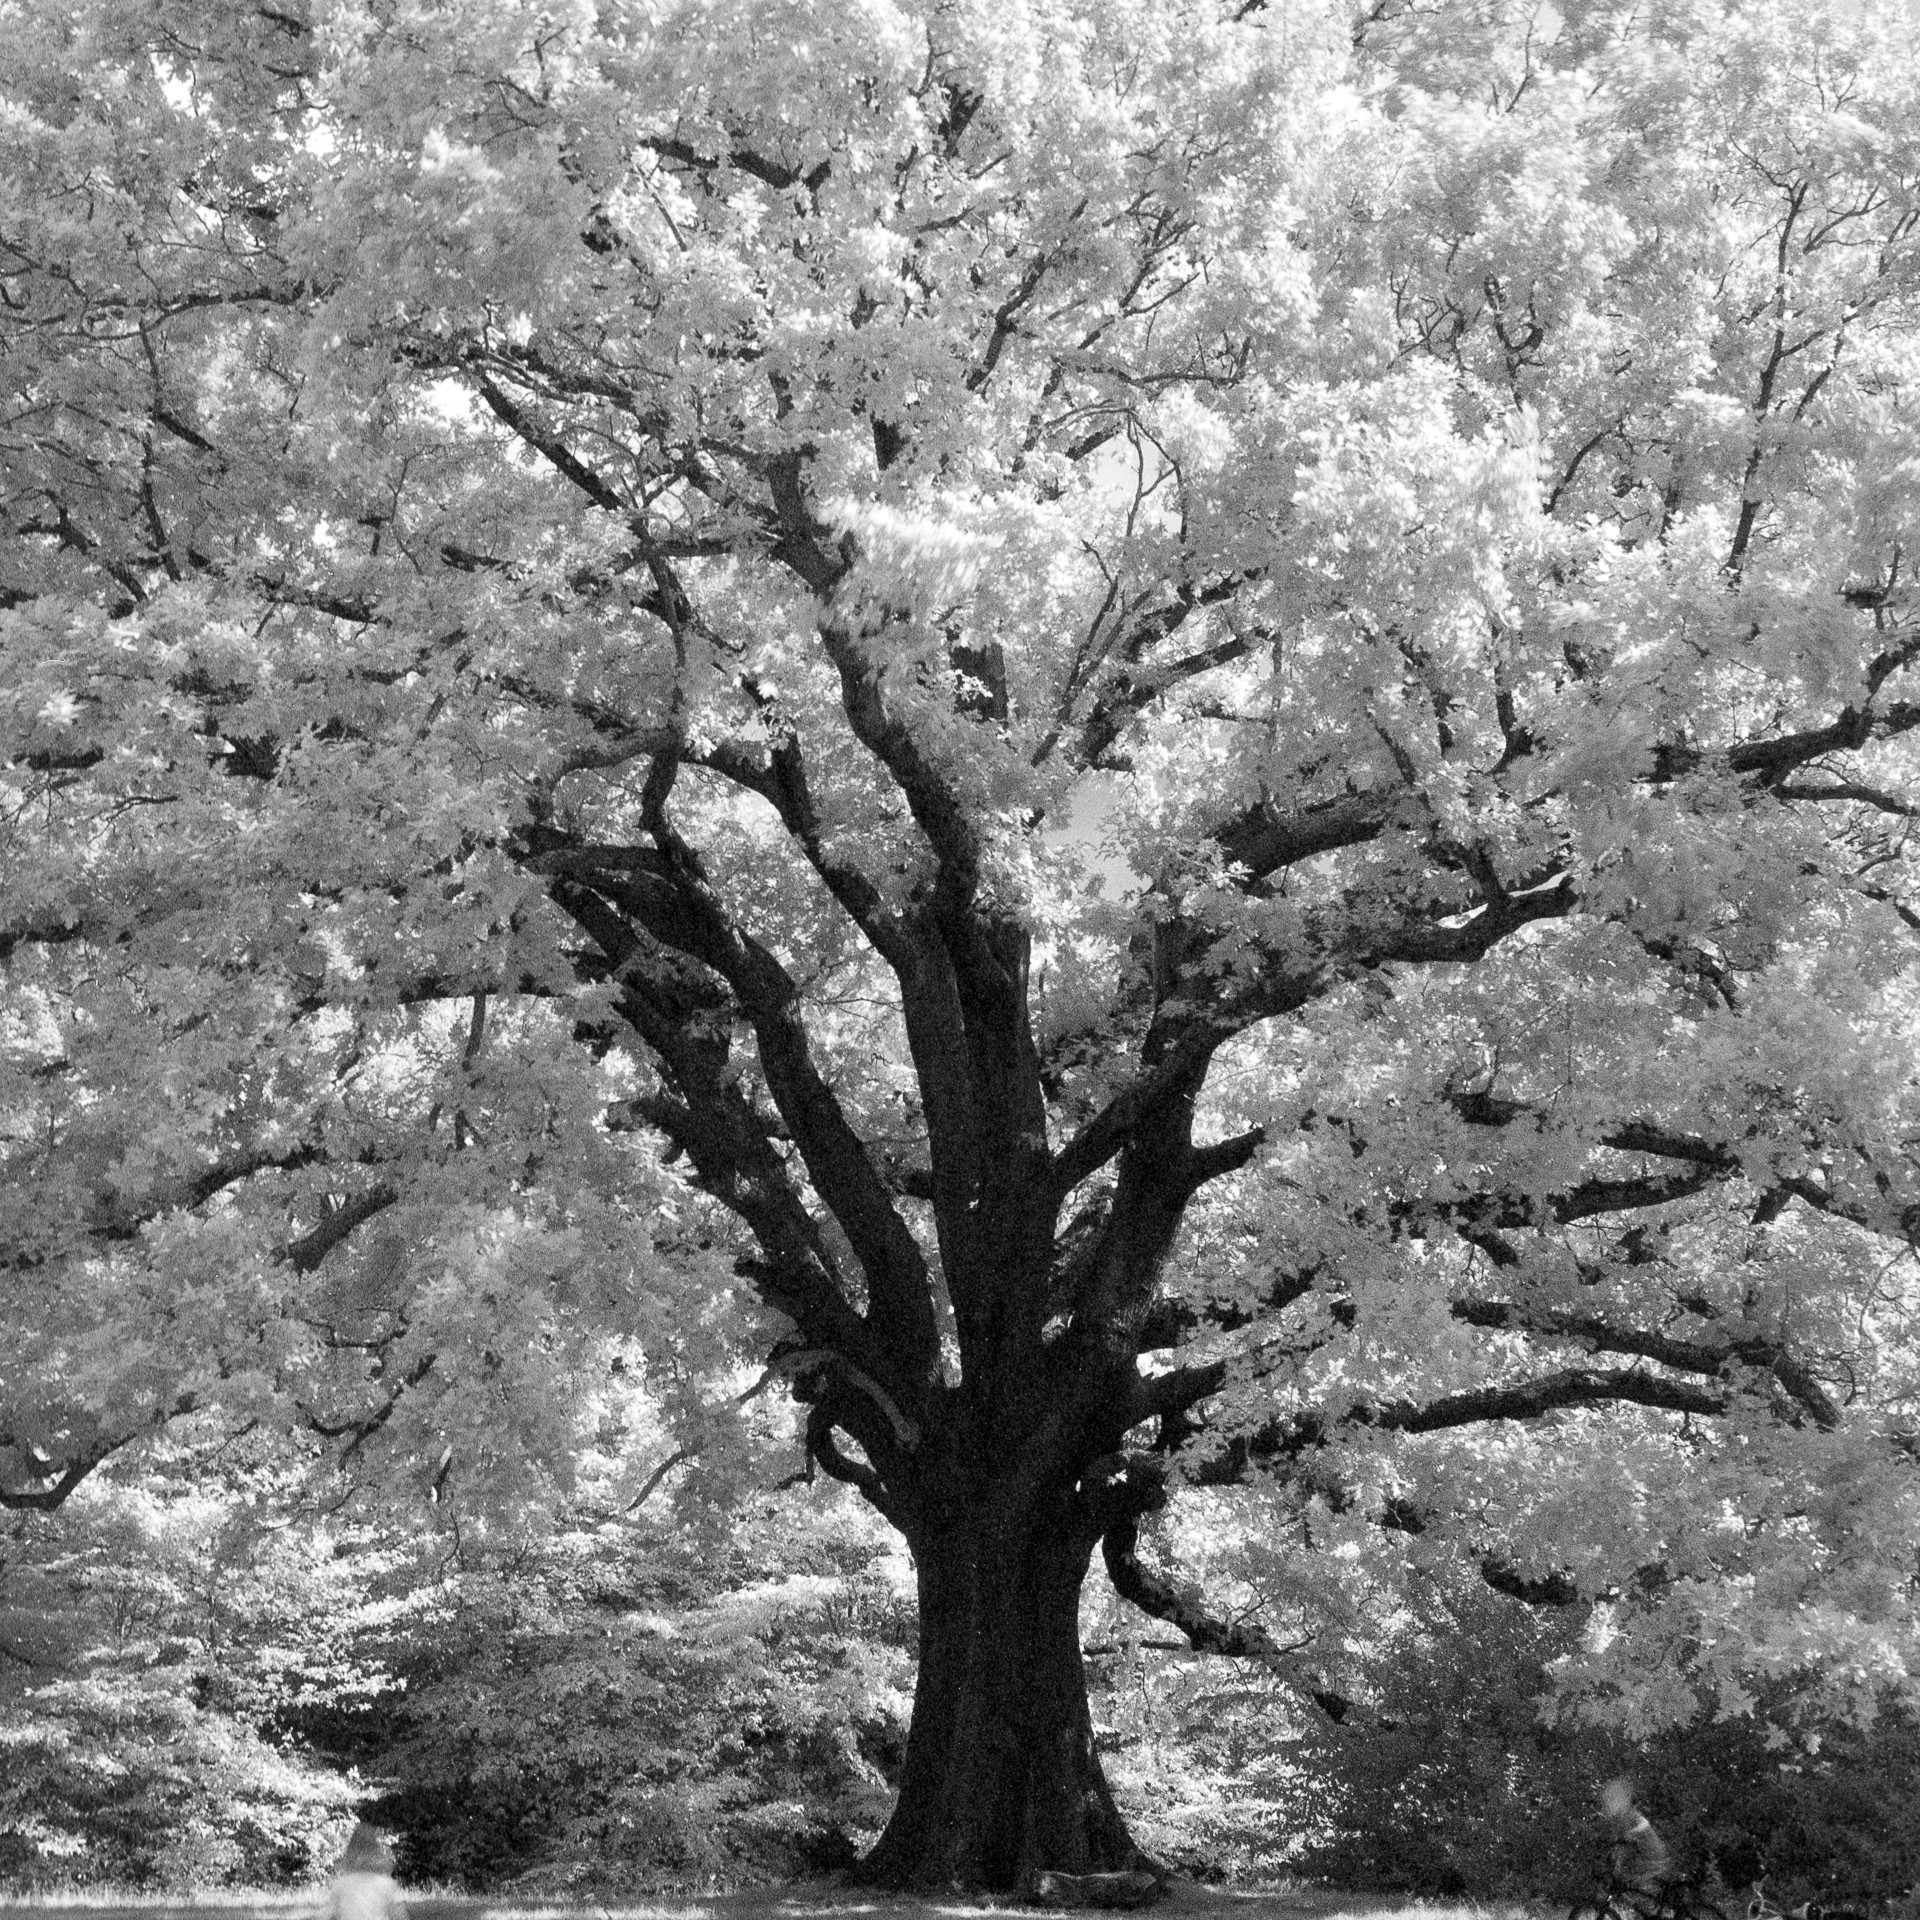 Paula Smith @paulasmithphoto · Jan 12 From my @ilfordphoto favourite shots of 2020. The Mighty Oak tree given some infrared treatment using SFX film and r72 filter. Camera: Bronica SQAI Film: Ilford SFX 200 Developed: Ilford DD-X 1+4 10mins #fridayfavourites #ilfordphoto #bestof2020 #believeinfilm